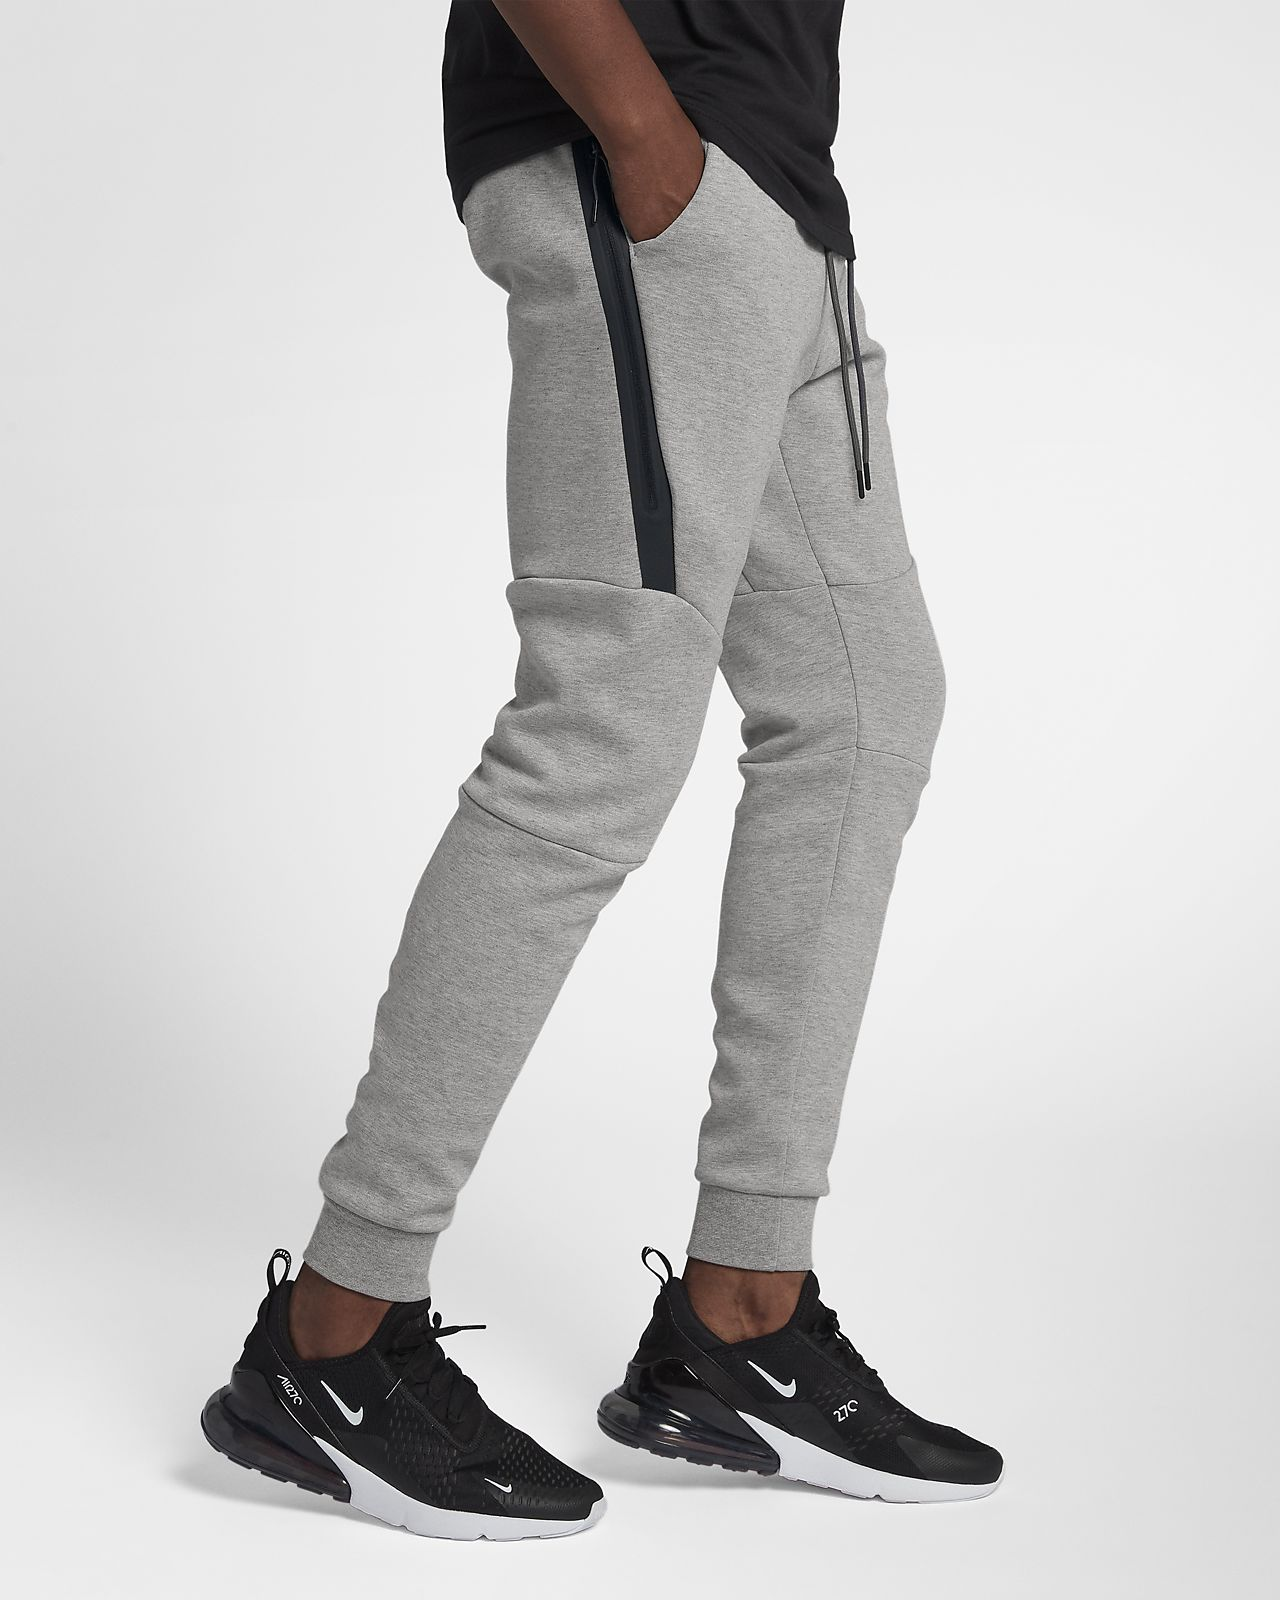 8426bf83c Nike Sportswear Tech Fleece Men s Joggers. Nike.com